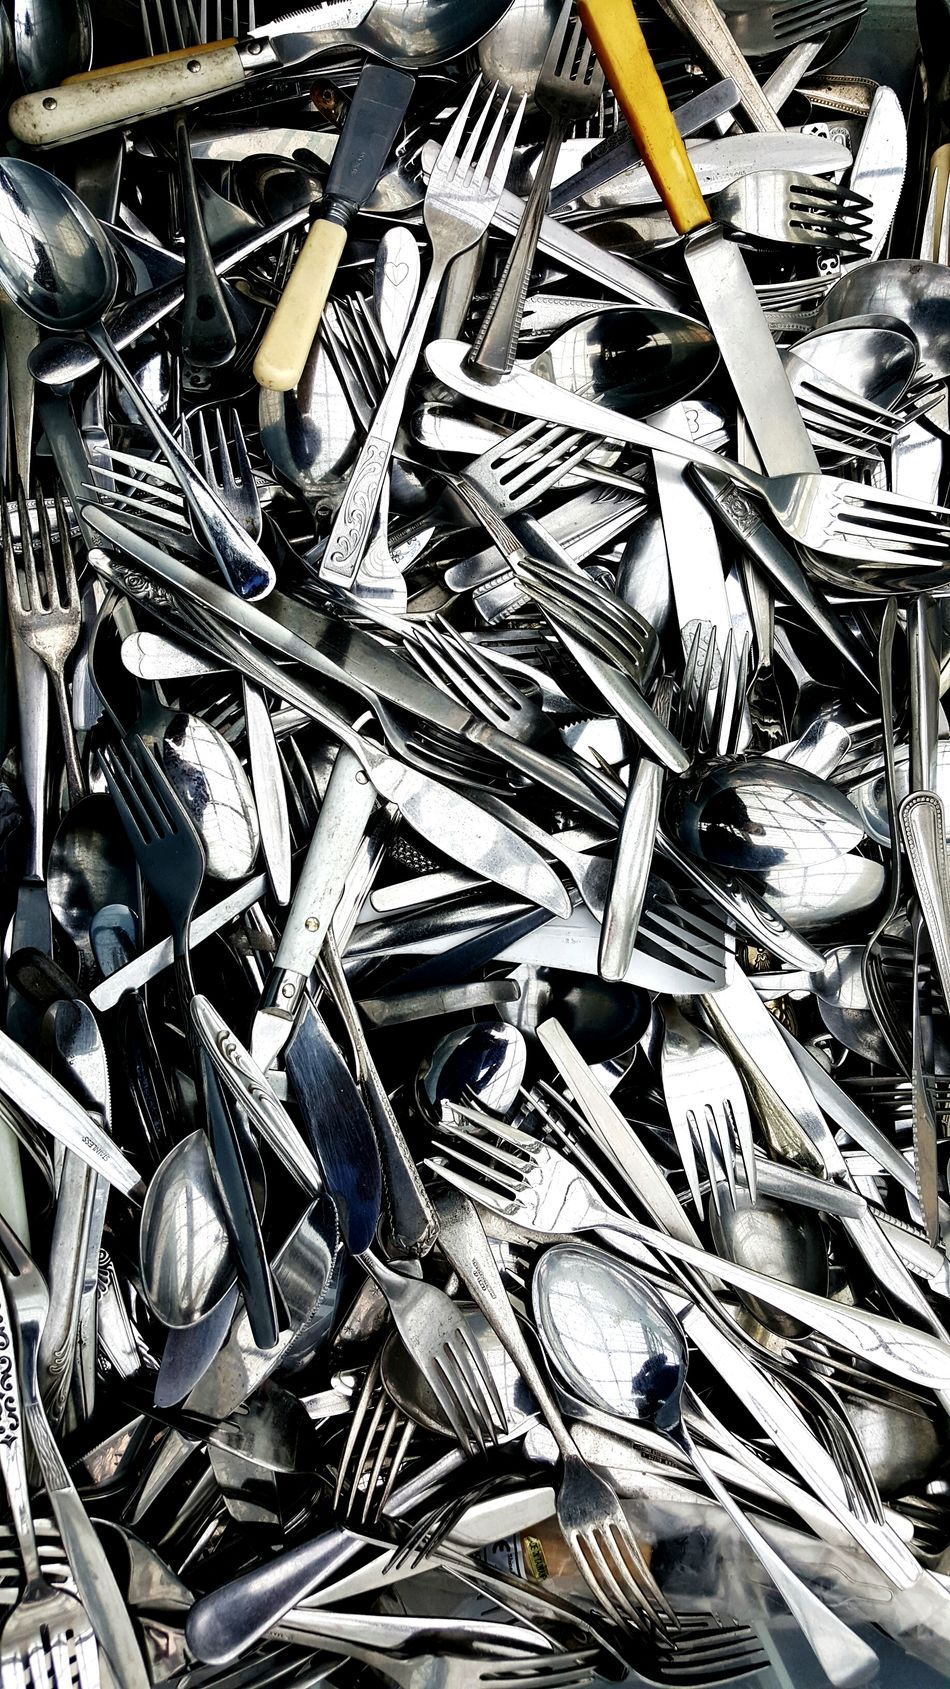 Abundance Large Group Of Objects Close-up Backgrounds Cutlery Cutlery Decoration Knives And Forks Background Background Texture Spoons Shiny Things Silver  Metal Shiny